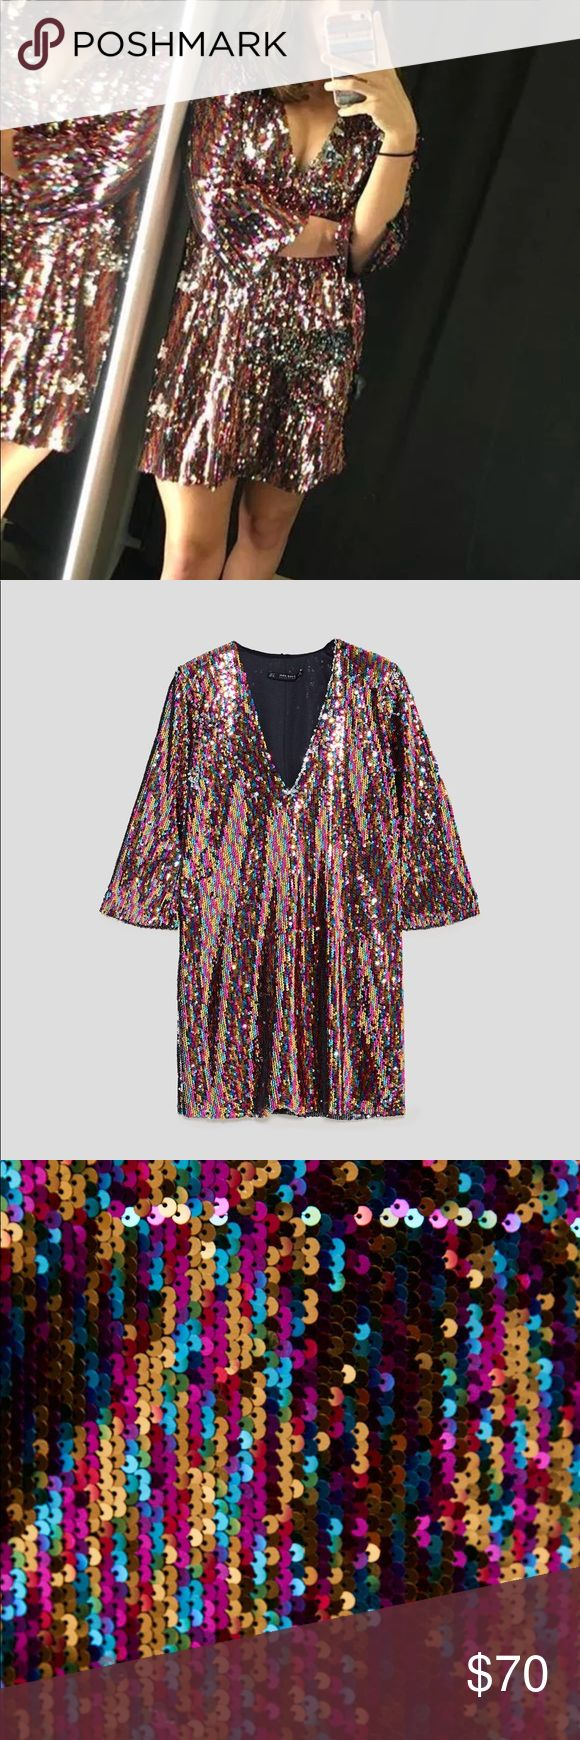 """ZARA MULTICOLORED SEQUIN MINI DRESS Zara multicolored sequin mini dress. Short sleeve. V neck. Multicolored sequins that when """"turned over"""" are silver. Fun party dress or going out dress. Zara Dresses Mini"""